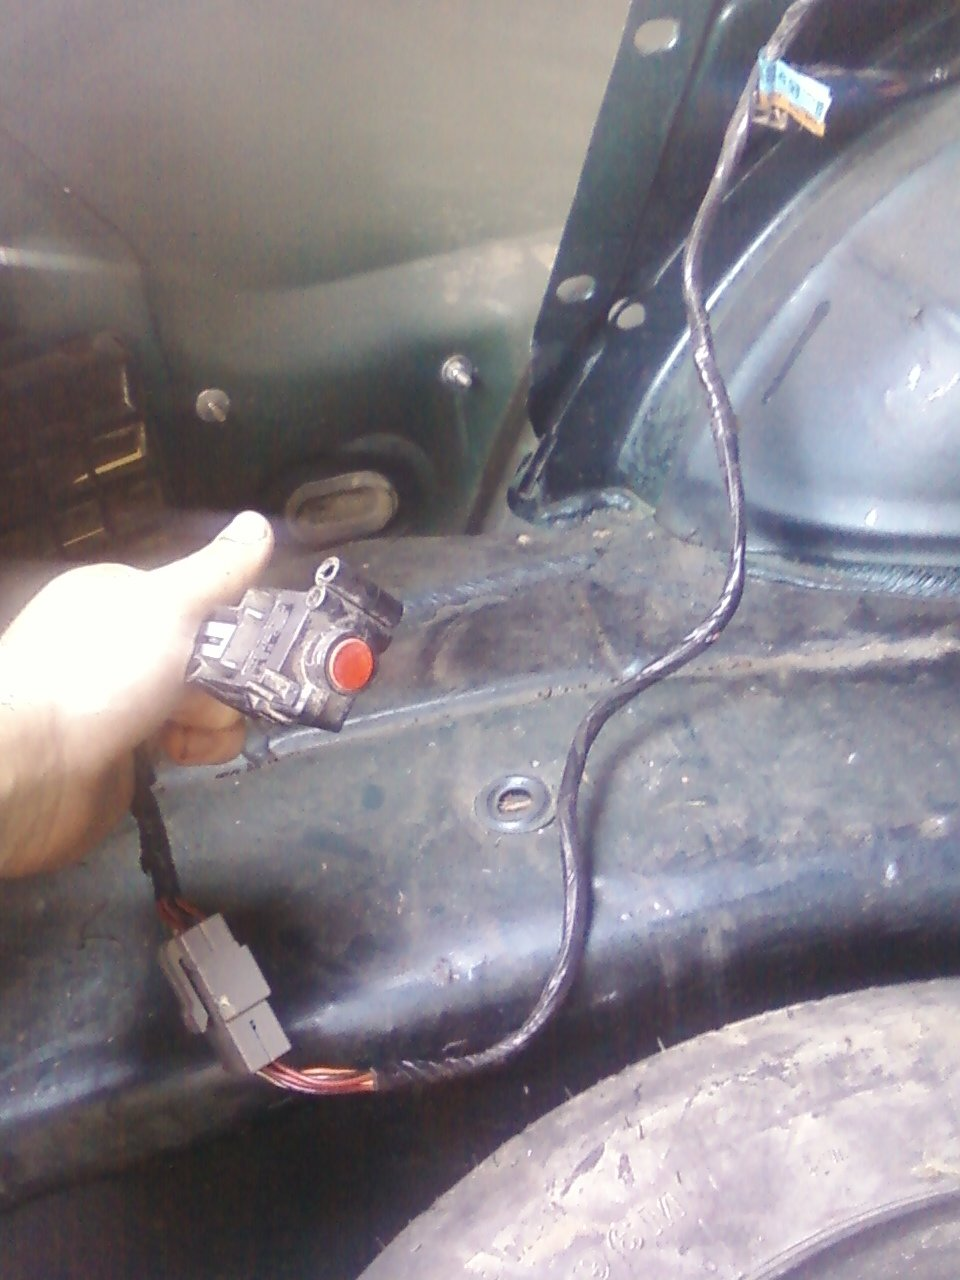 Ford Mustang V6 1994 To 2004 Why Wont Car Start Mustangforums 2000 Fuel Filter Location Ifs Switch Located Behind Trunk Paneling